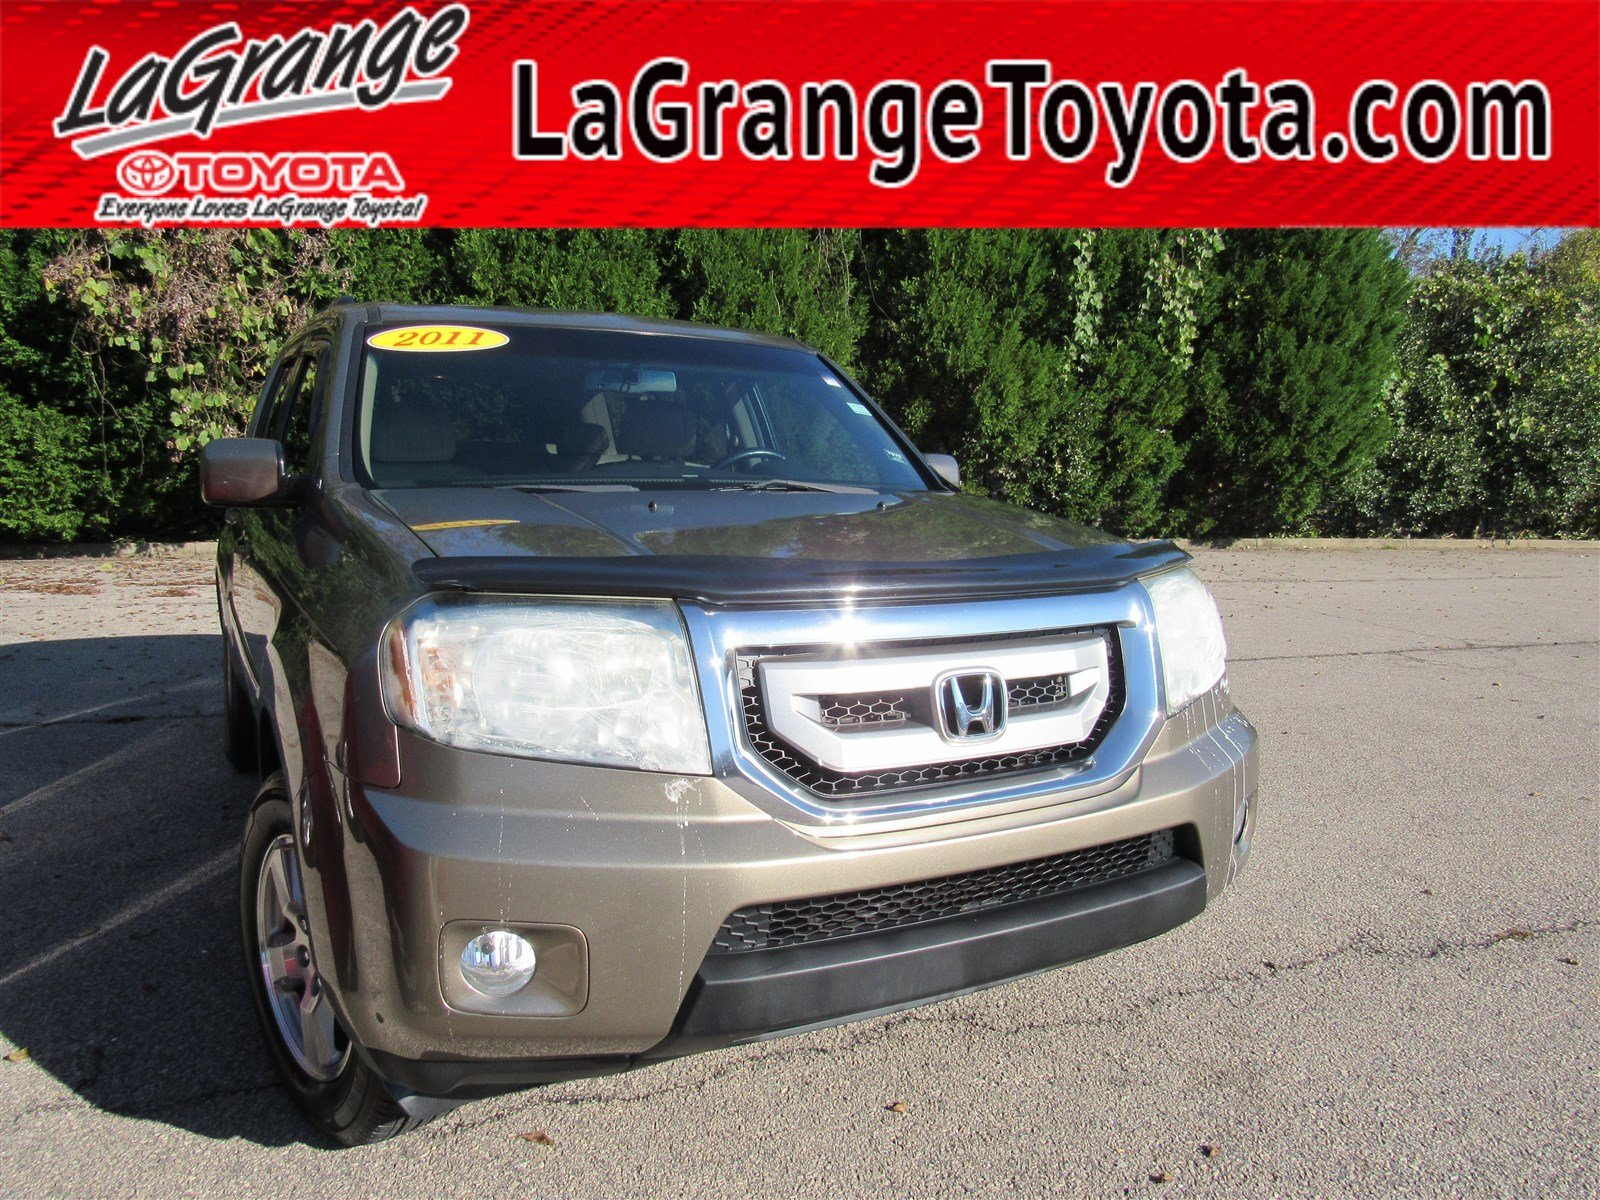 Pre Owned 2011 Honda Pilot 2wd 4dr Ex L Suv In Lagrange N4009b Fog Light Wiring Harness